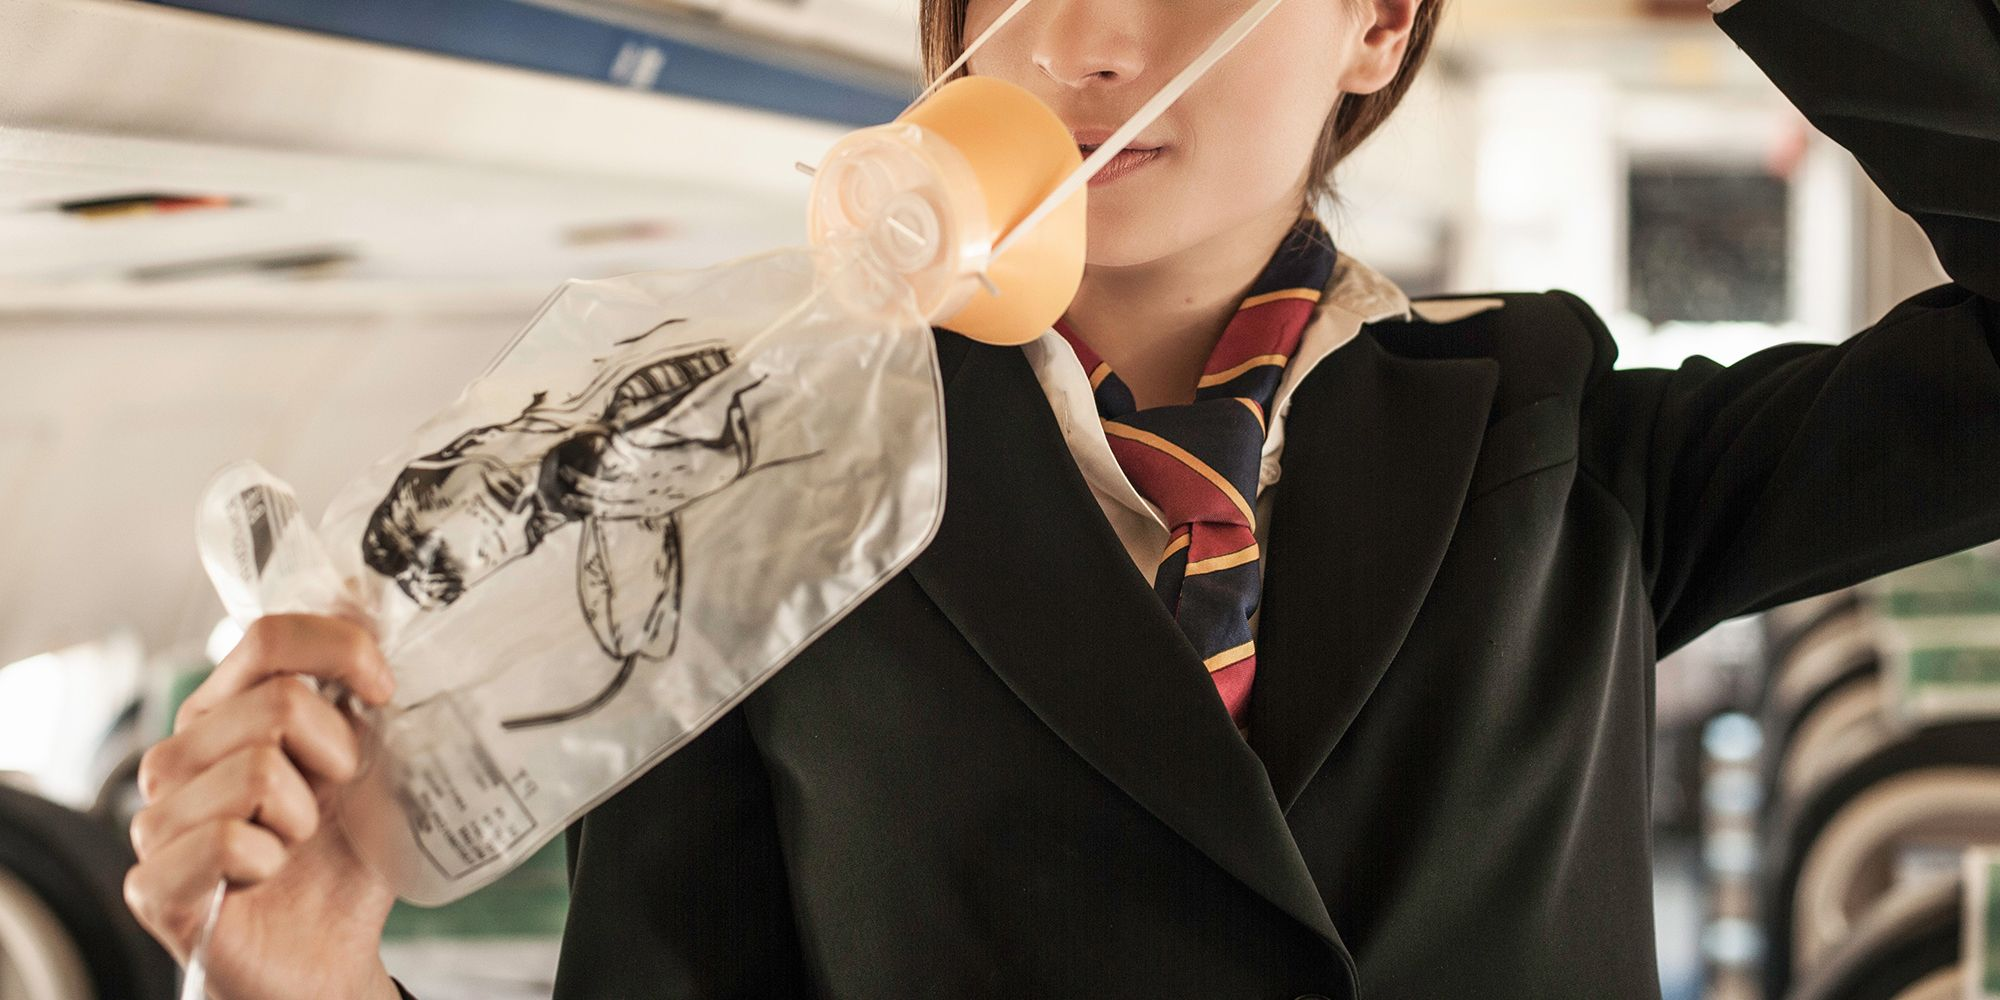 things i wish i knew before i became a flight attendant